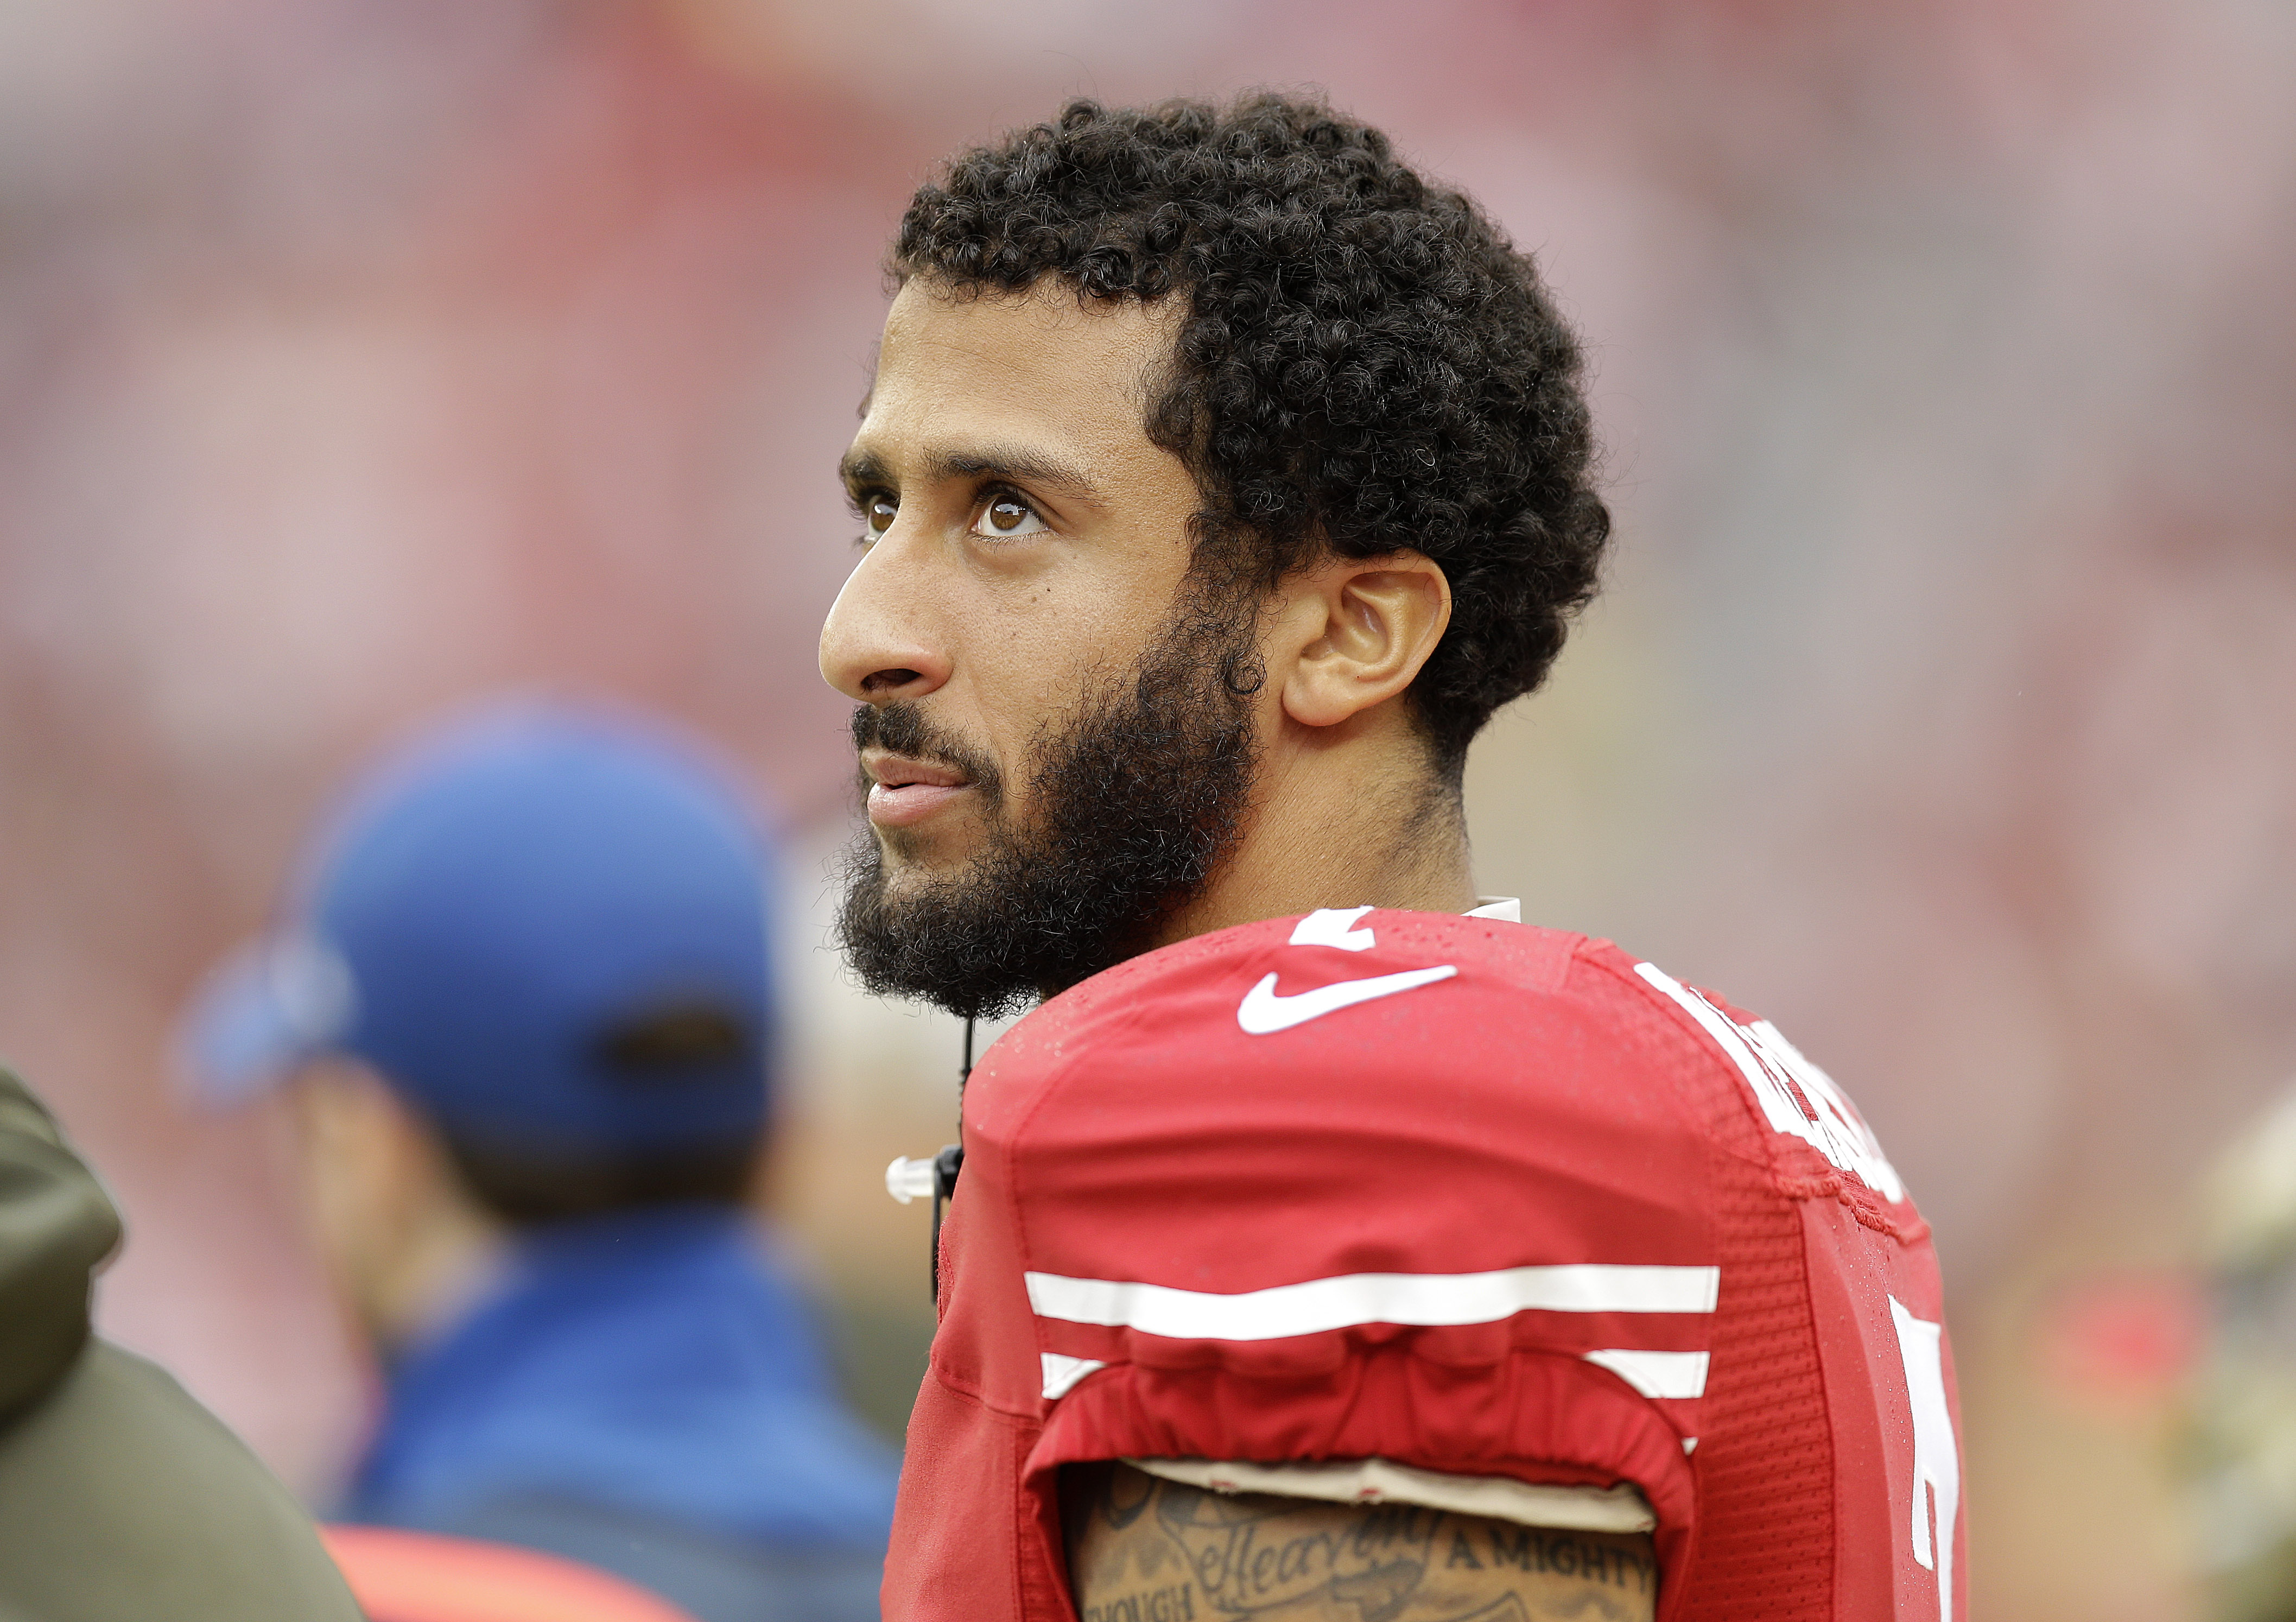 FILE - In this Nov. 8, 2015, file photo, San Francisco 49ers quarterback Colin Kaepernick (7) stands on the sideline during the first half of an NFL football game against the Atlanta Falcons in Santa Clara, Calif.  The The 49ers announced Saturday, Nov. 2